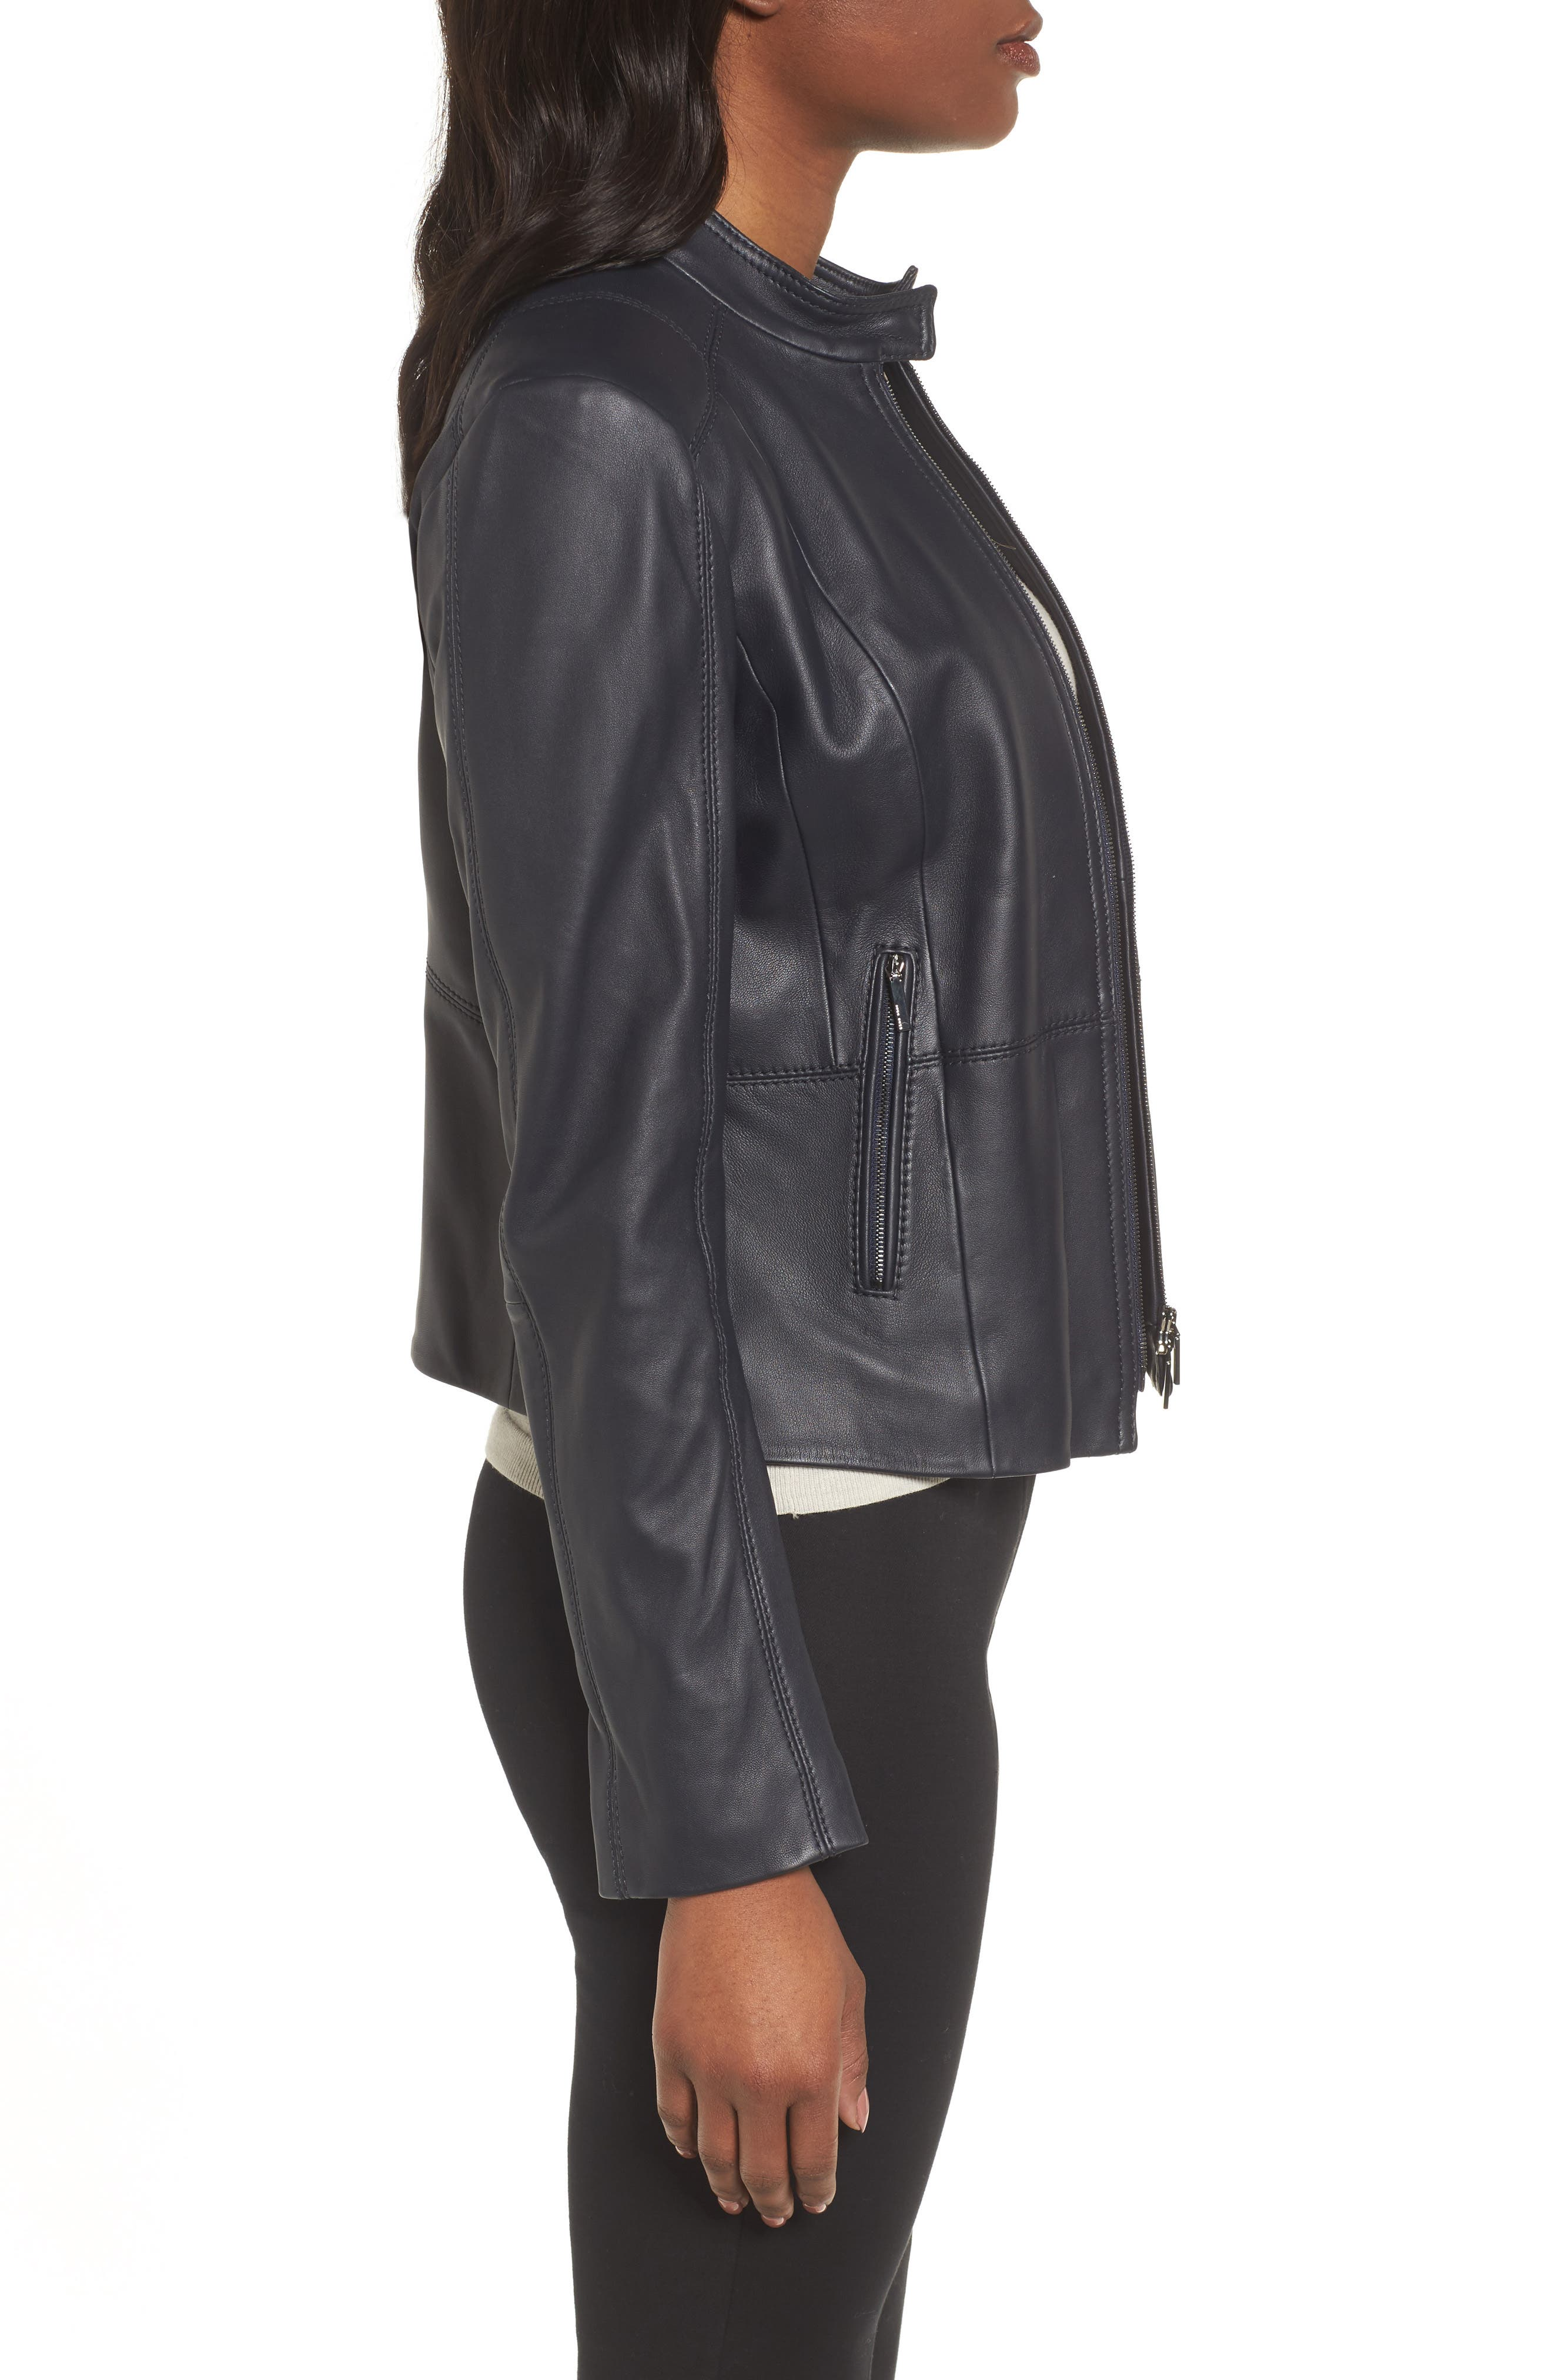 Sammonaie Leather Jacket,                             Alternate thumbnail 3, color,                             Navy